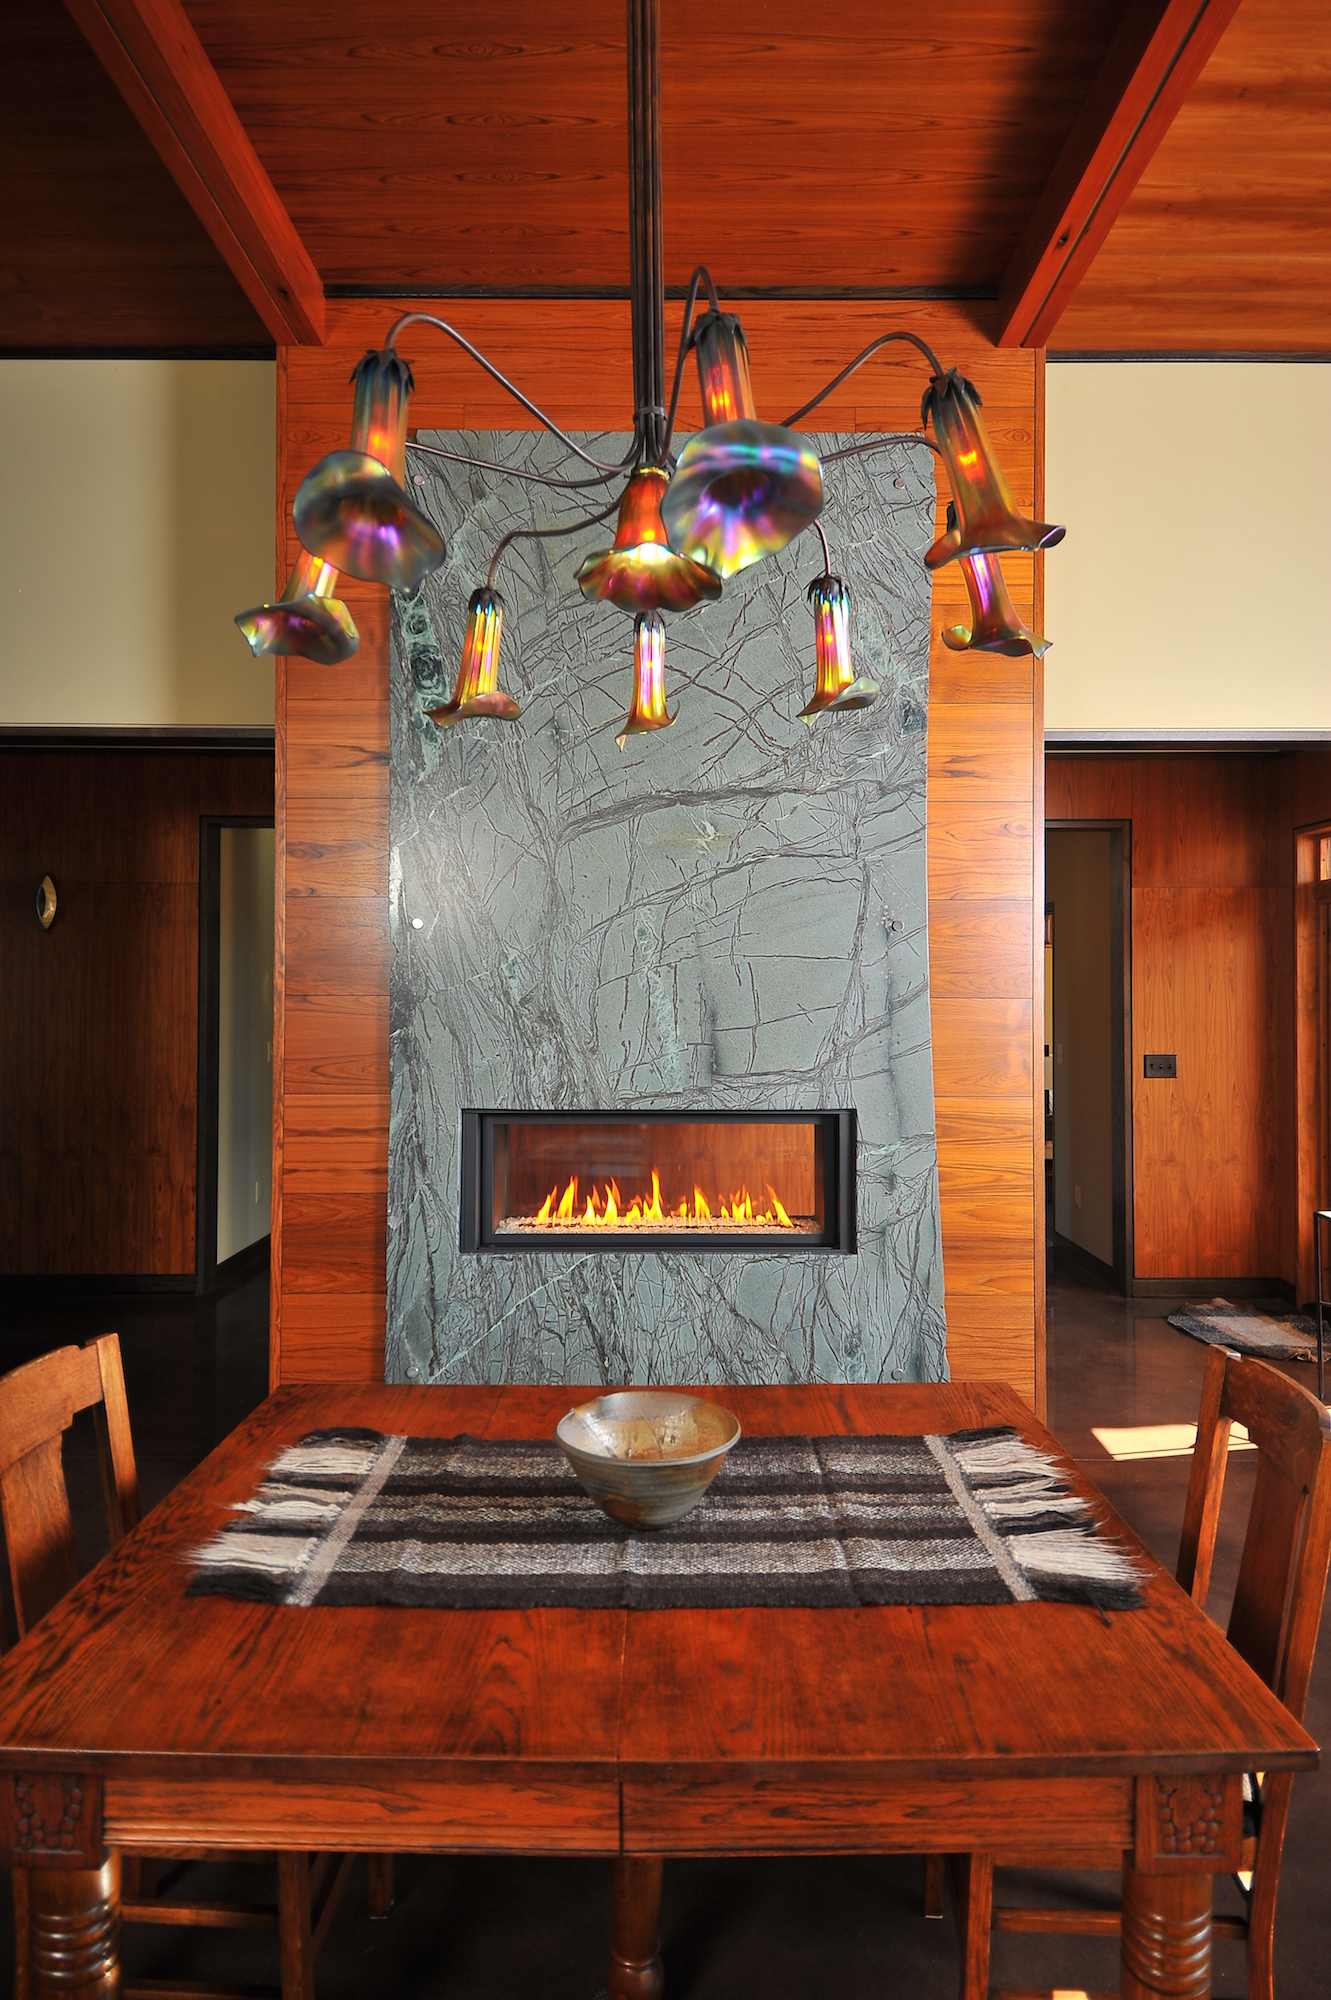 Beautiful Soapstone Fireplace Surround by C&D Granite Countertops in Minneapolis MN. View our fireplace photo gallery.